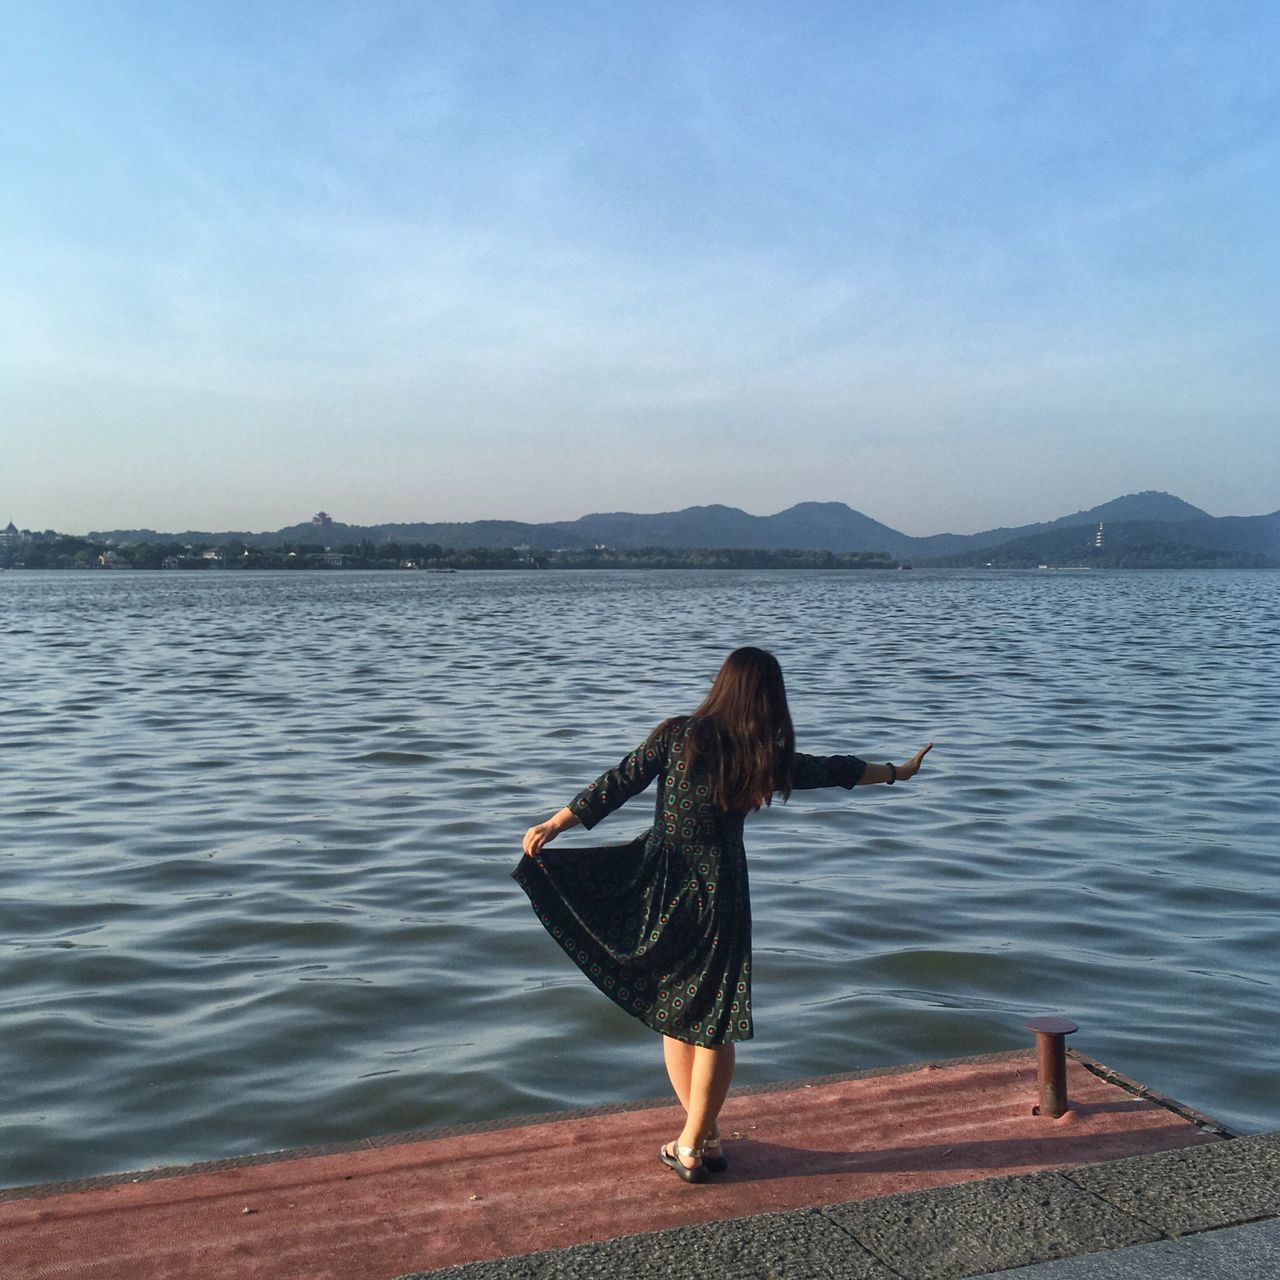 water, one person, real people, nature, sea, beauty in nature, scenics, full length, tranquil scene, leisure activity, outdoors, lifestyles, tranquility, day, young women, mountain, young adult, women, sky, people